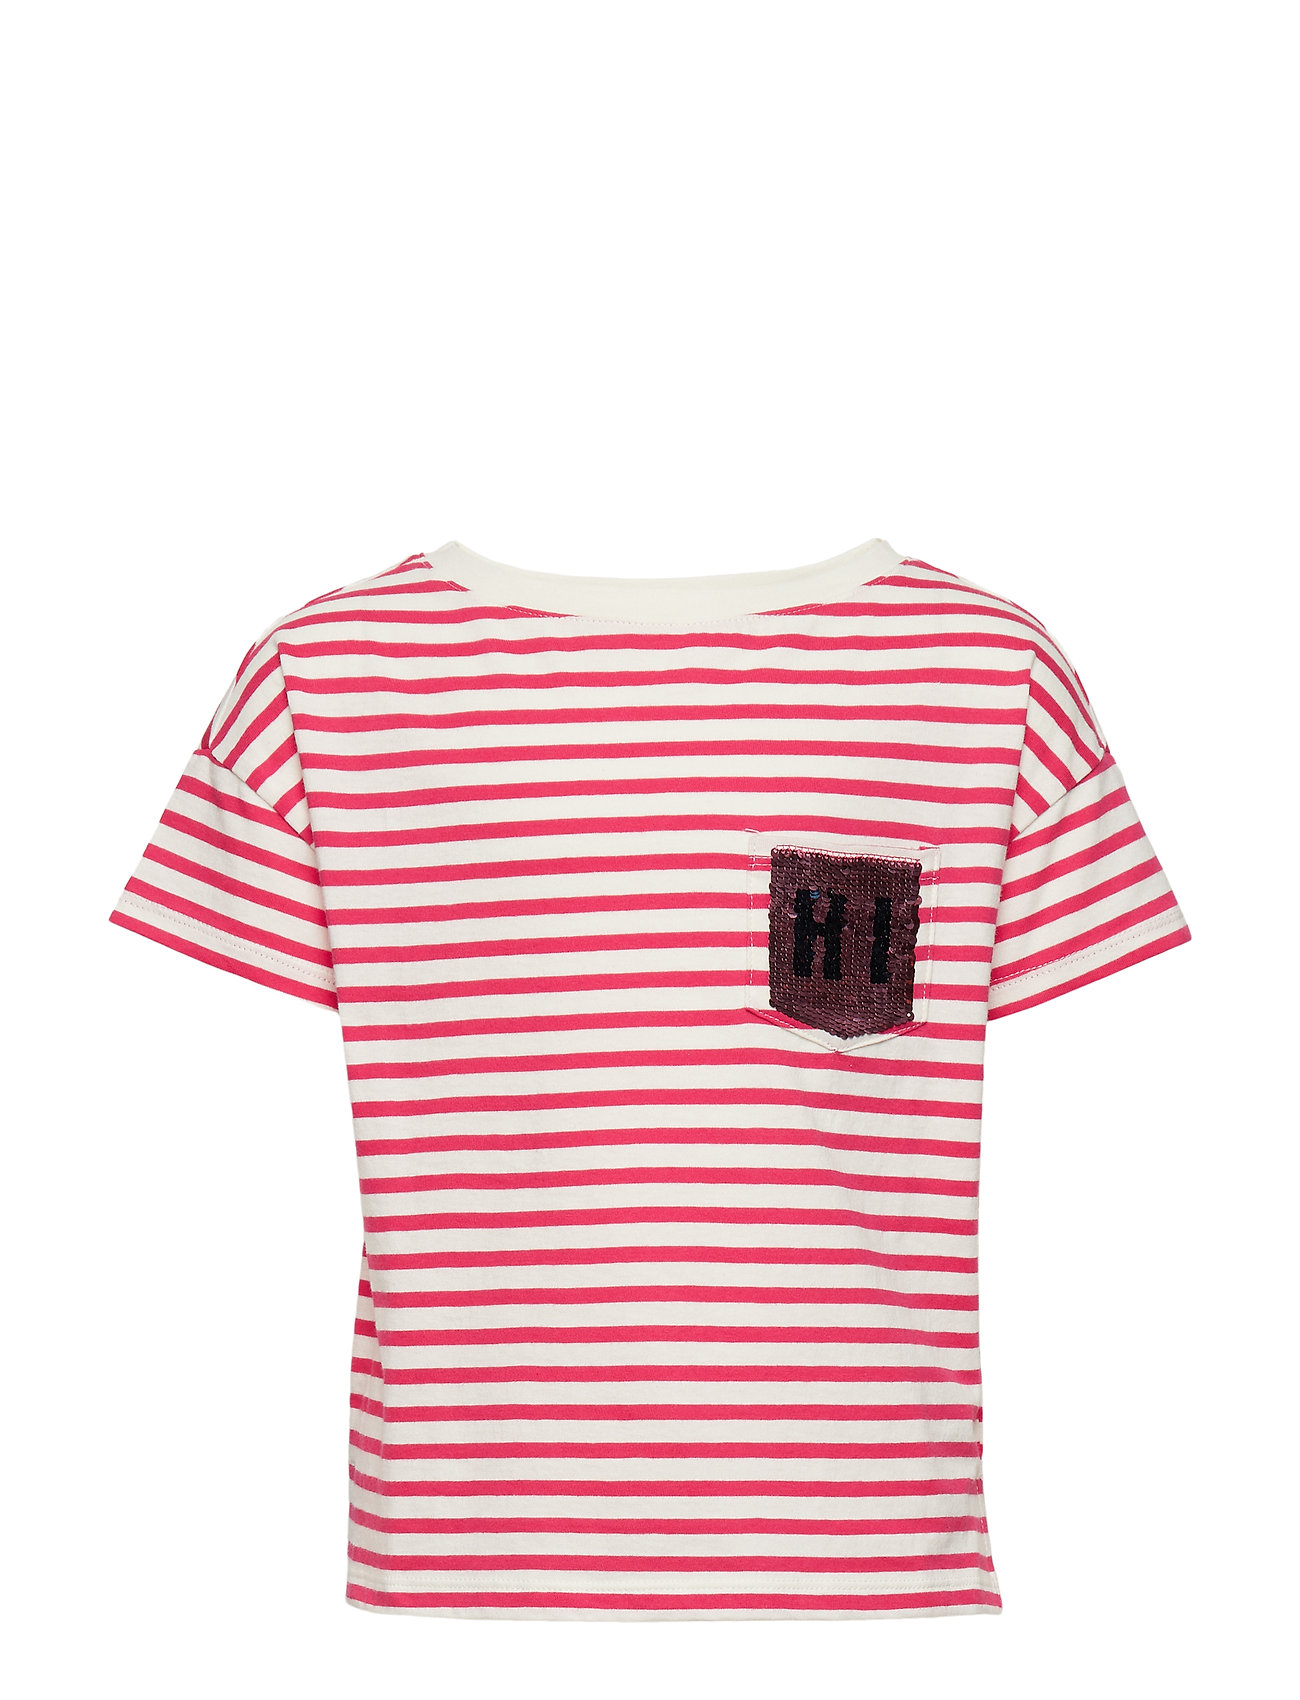 GAP AUG FLP GR T - PINK STRIPE